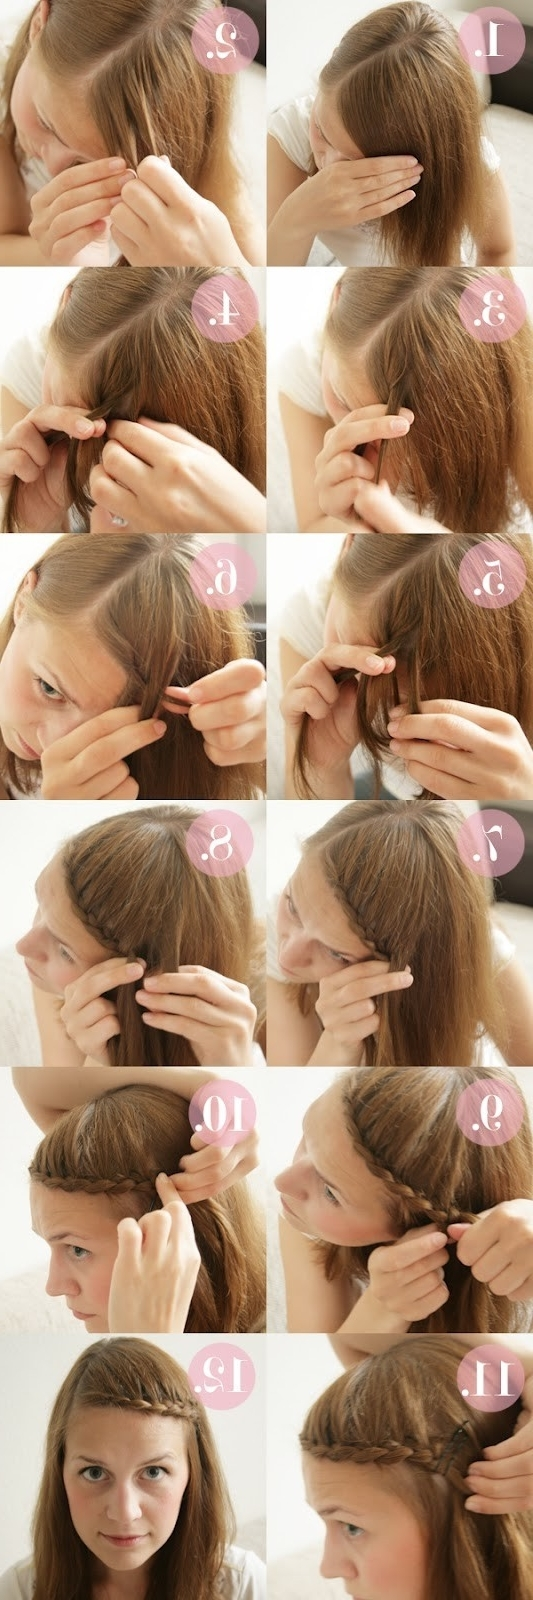 15 Braided Bangs Tutorials: Cute, Easy Hairstyles – Pretty Designs Intended For Well Known Braided Hairstyles With Bangs (View 1 of 15)